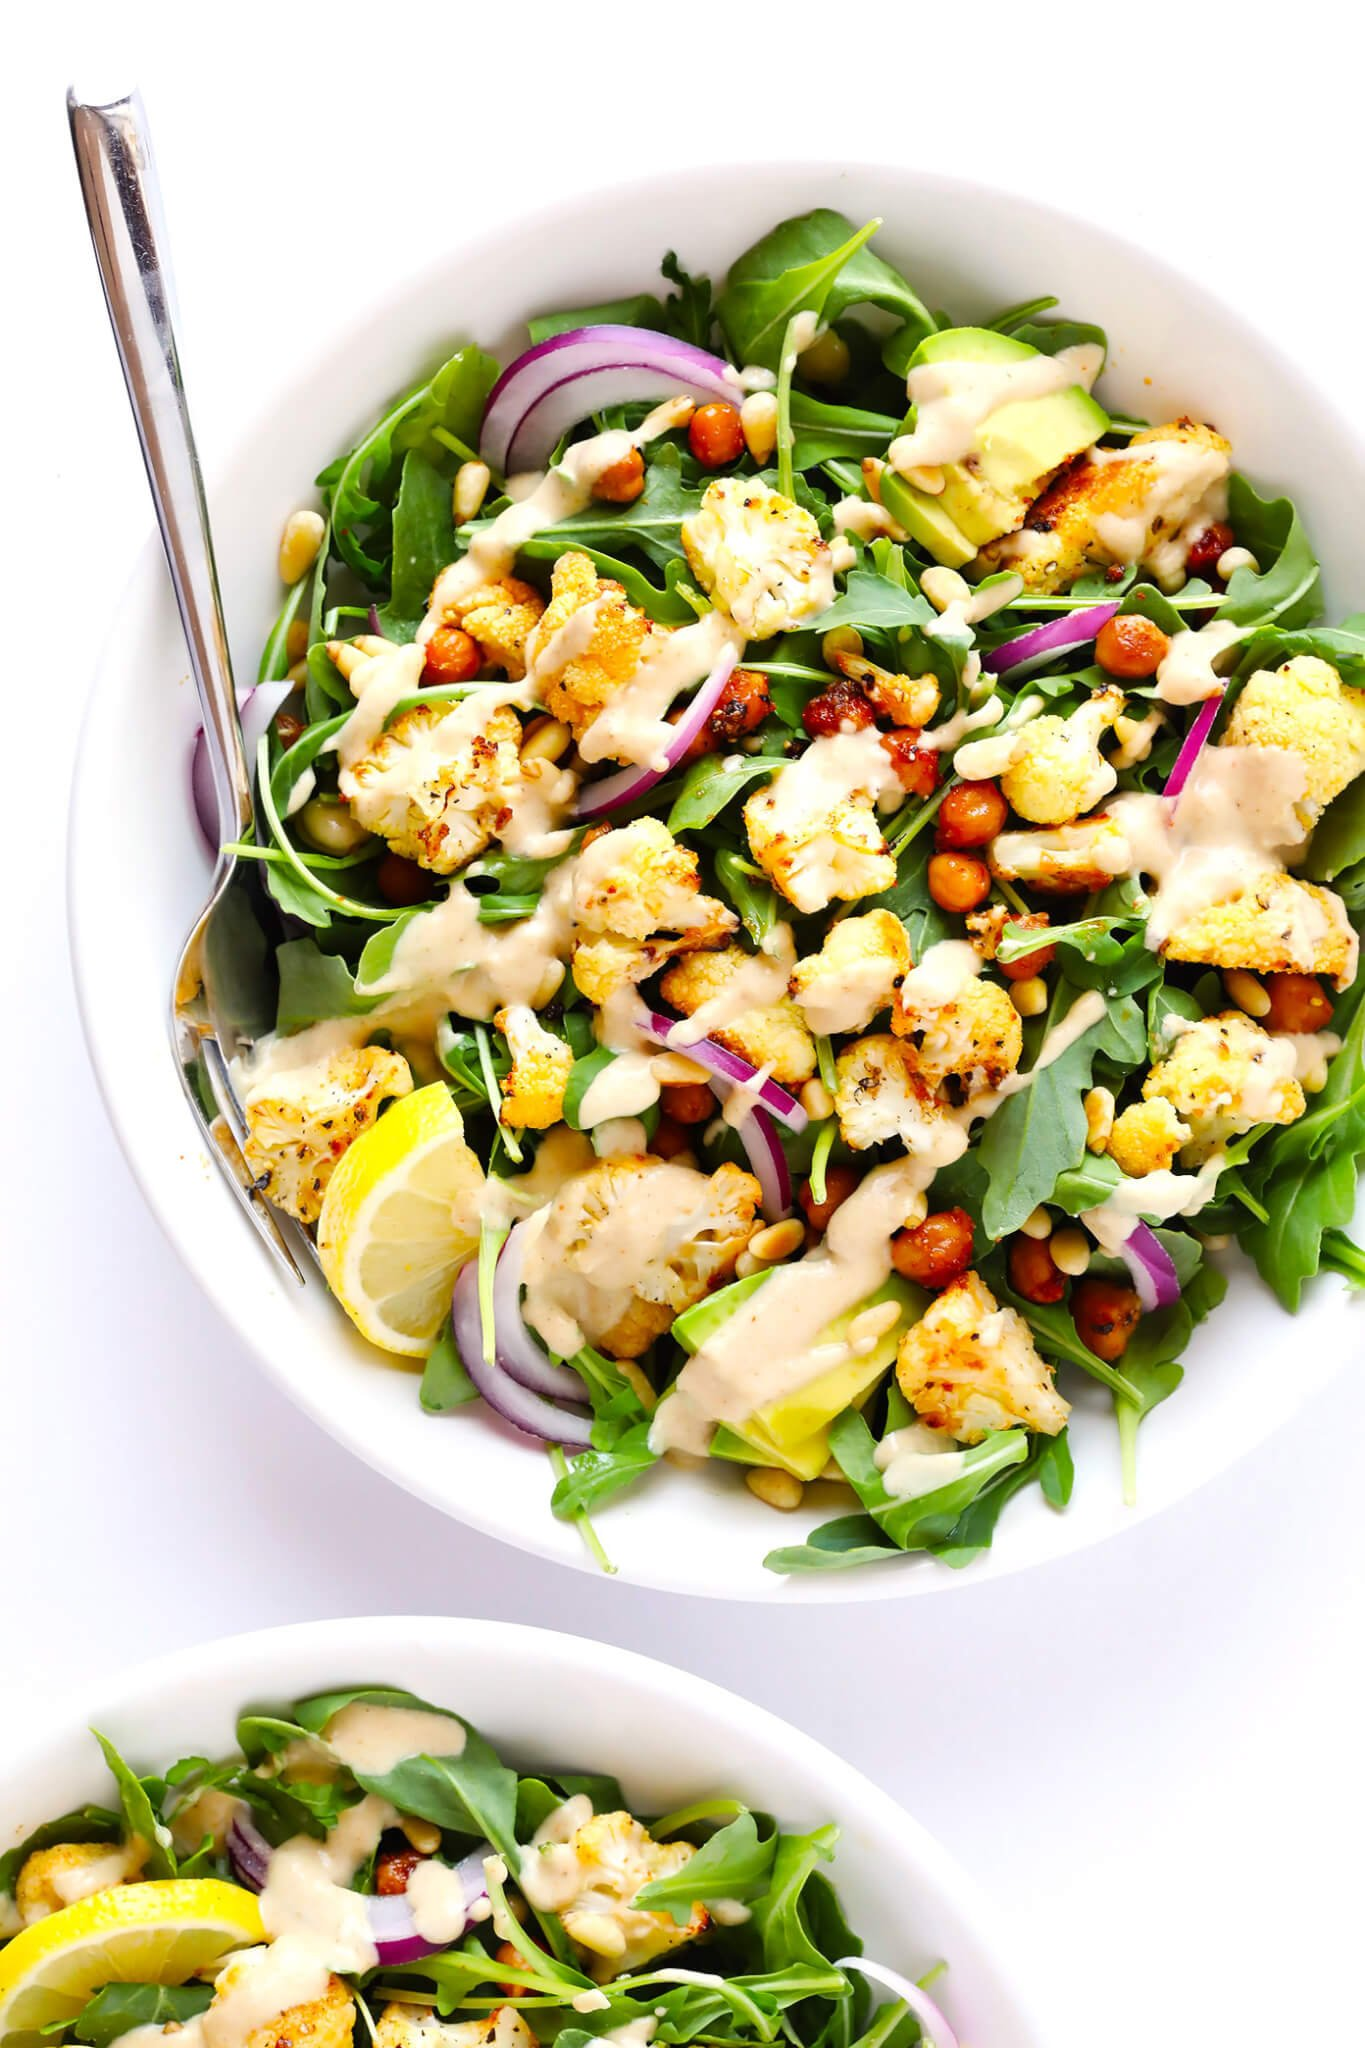 Roasted Cauliflower, Chickpea and Arugula Salad Bowls with Dreamy Tahini Dressing